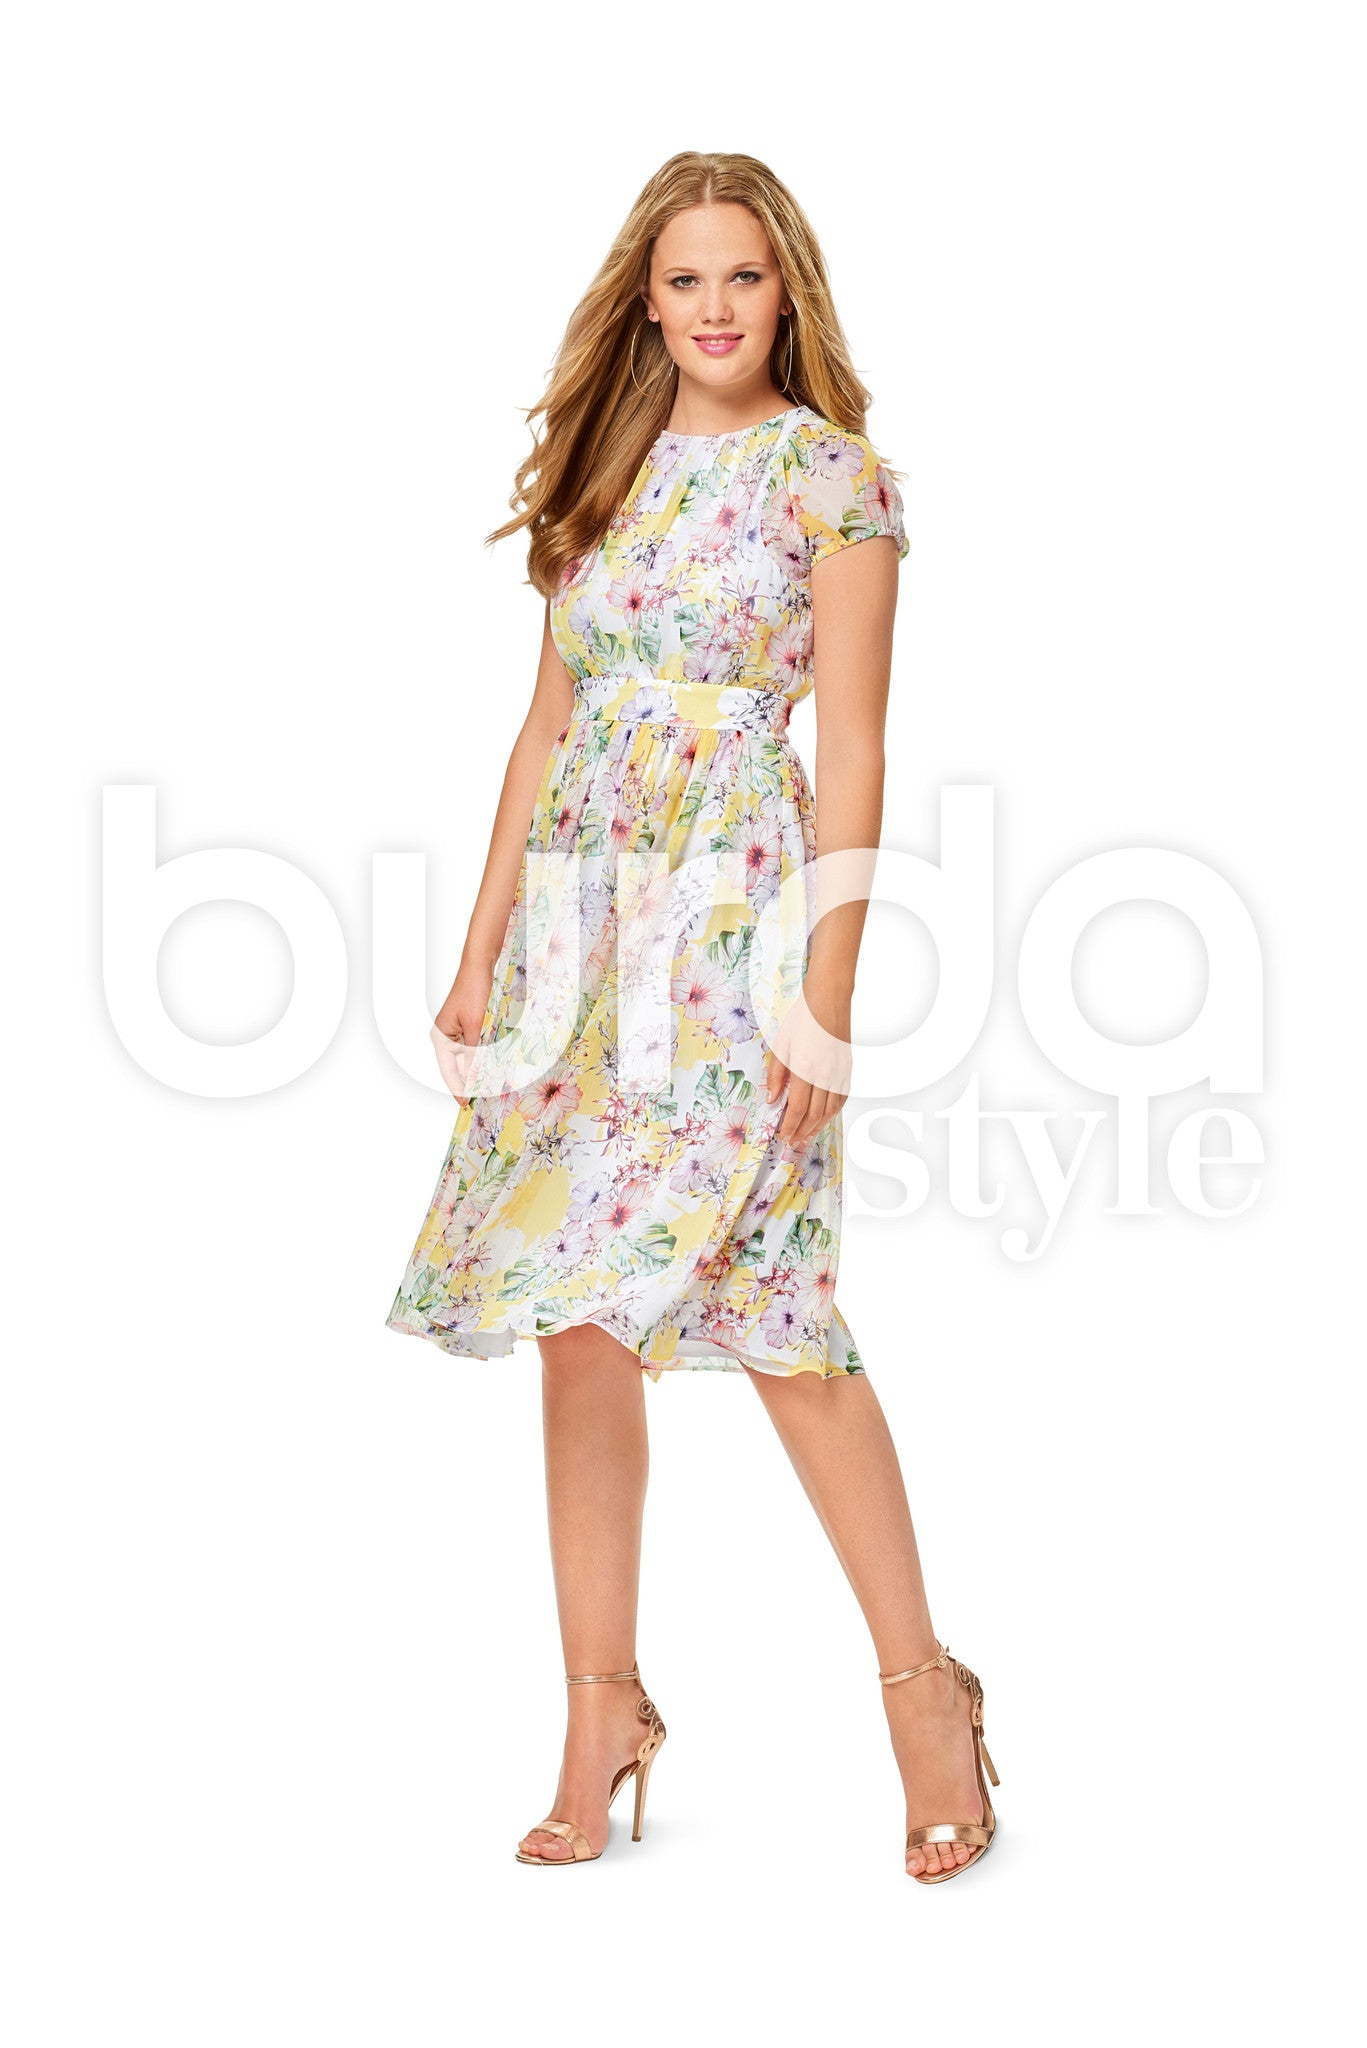 Burda Style Pattern BD6518 Misses' Two Layered Dress